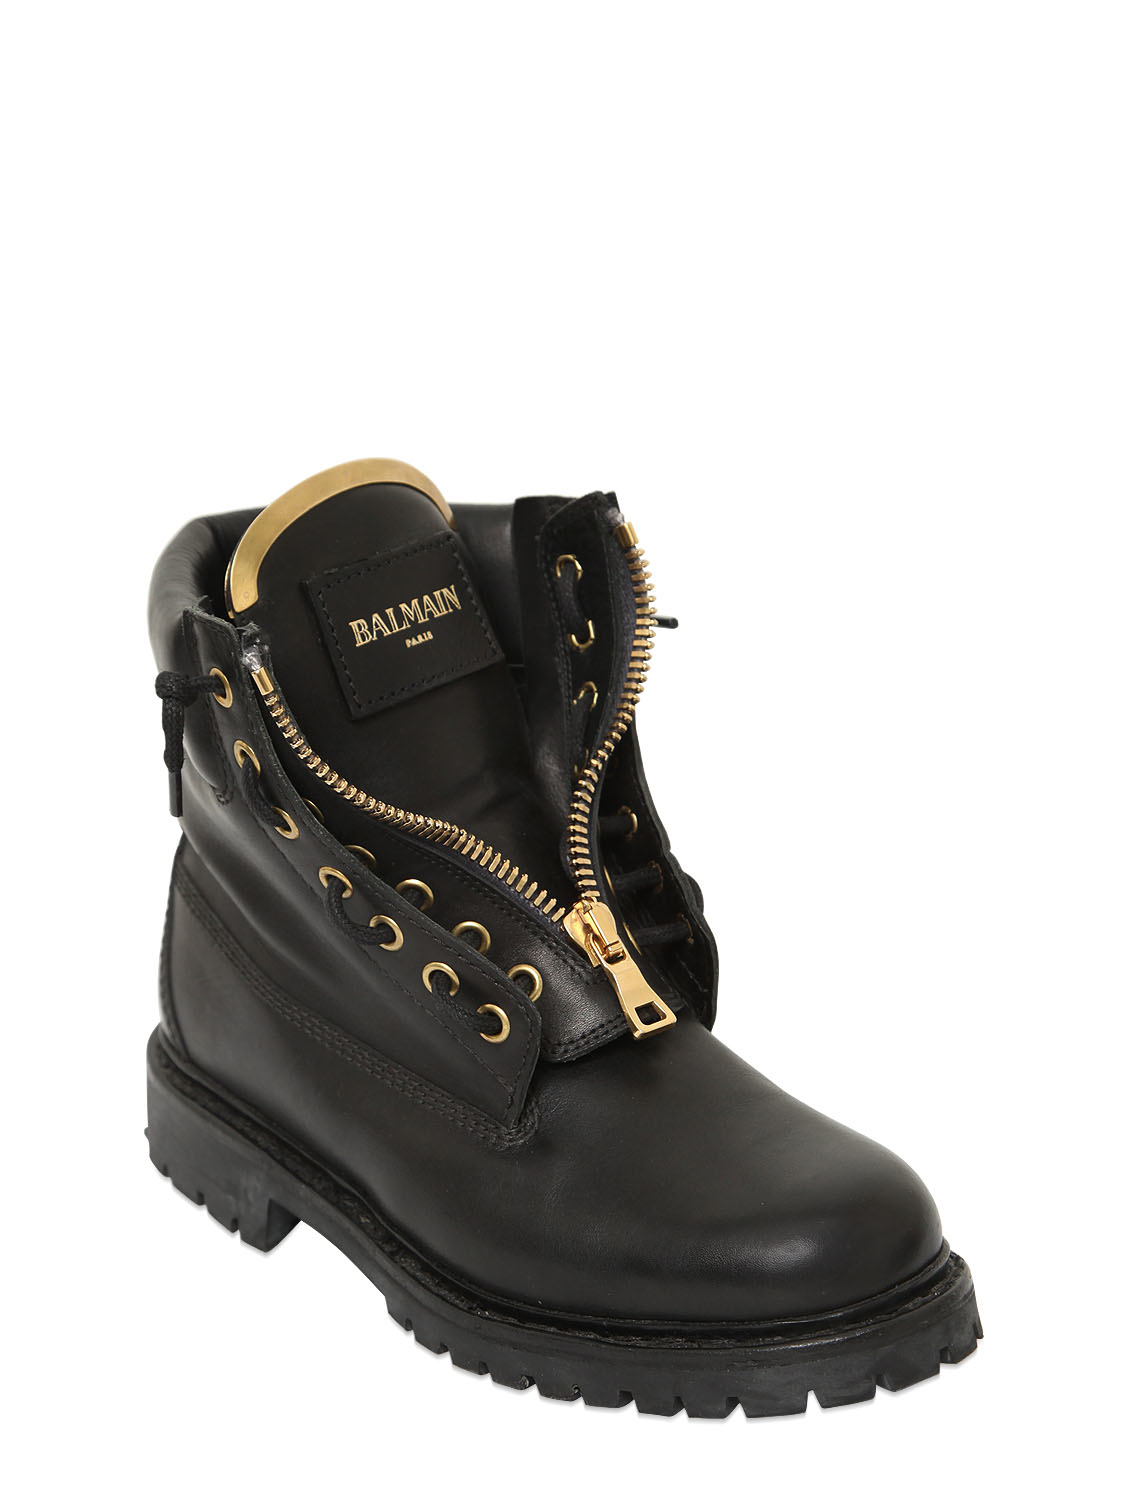 Balmain Taiga Leather Ankle Boots In Black For Men Lyst